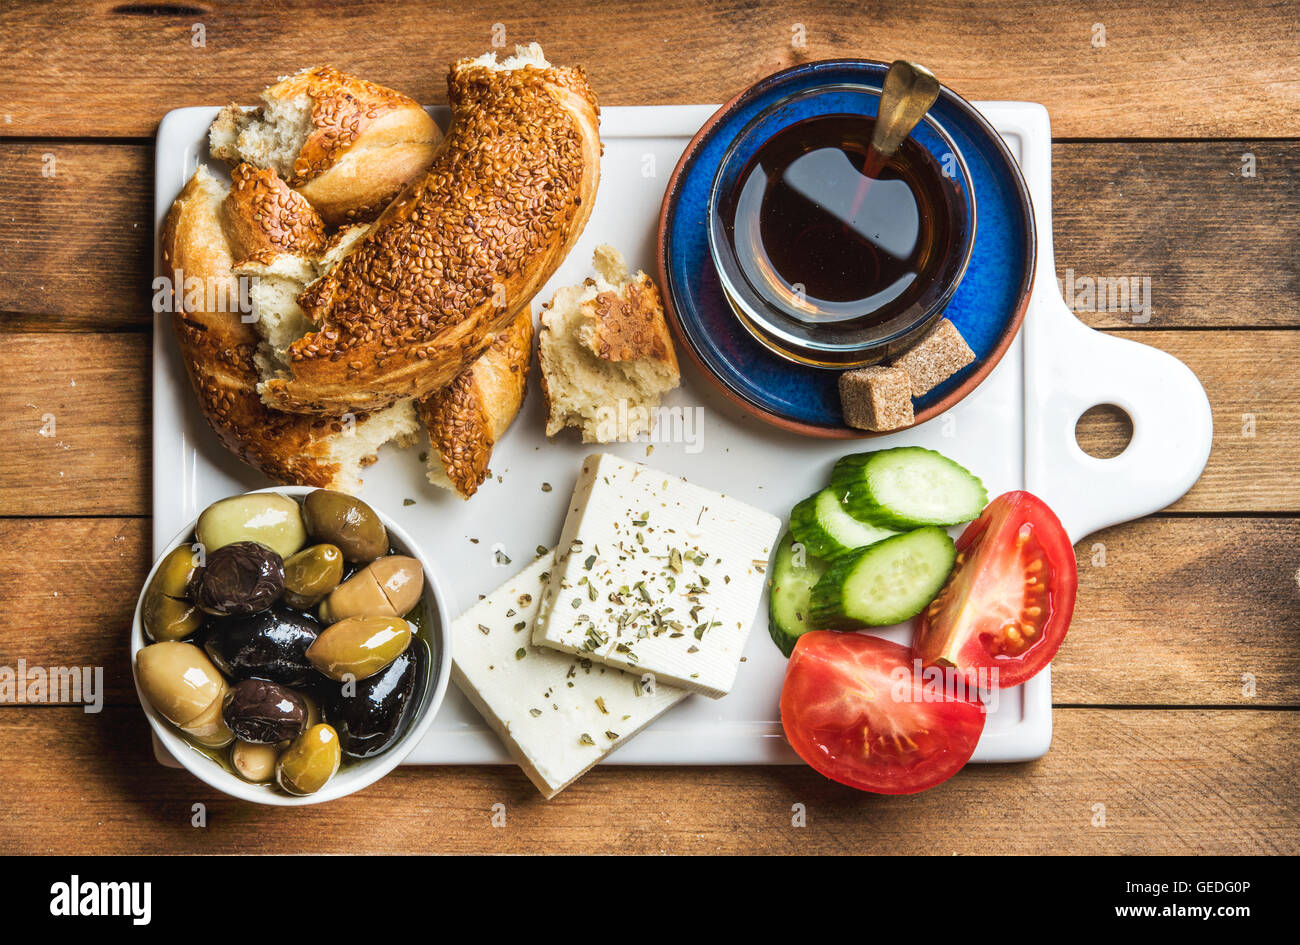 Turkish traditional breakfast with feta cheese, vegetables, olives, simit bagel and black tea on white ceramic board - Stock Image